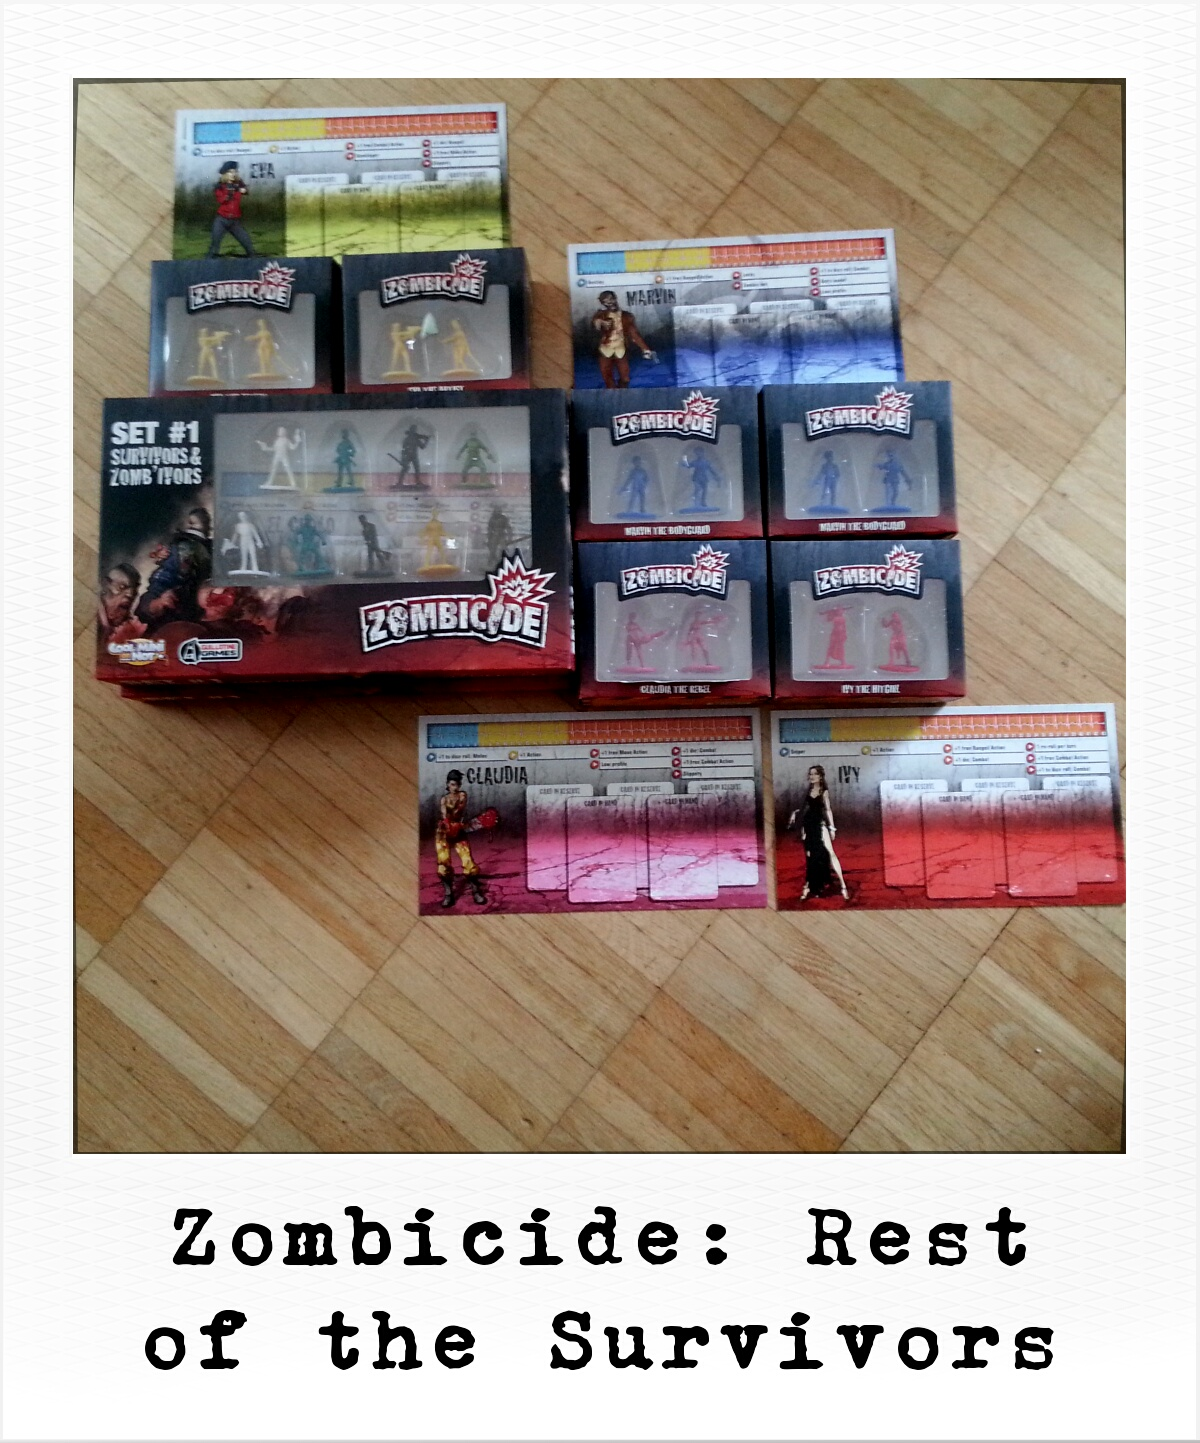 Zombicide: Rest of the Survivors - Eagle Chaz, Troy, The Cardboard, etc. (Privates Foto)